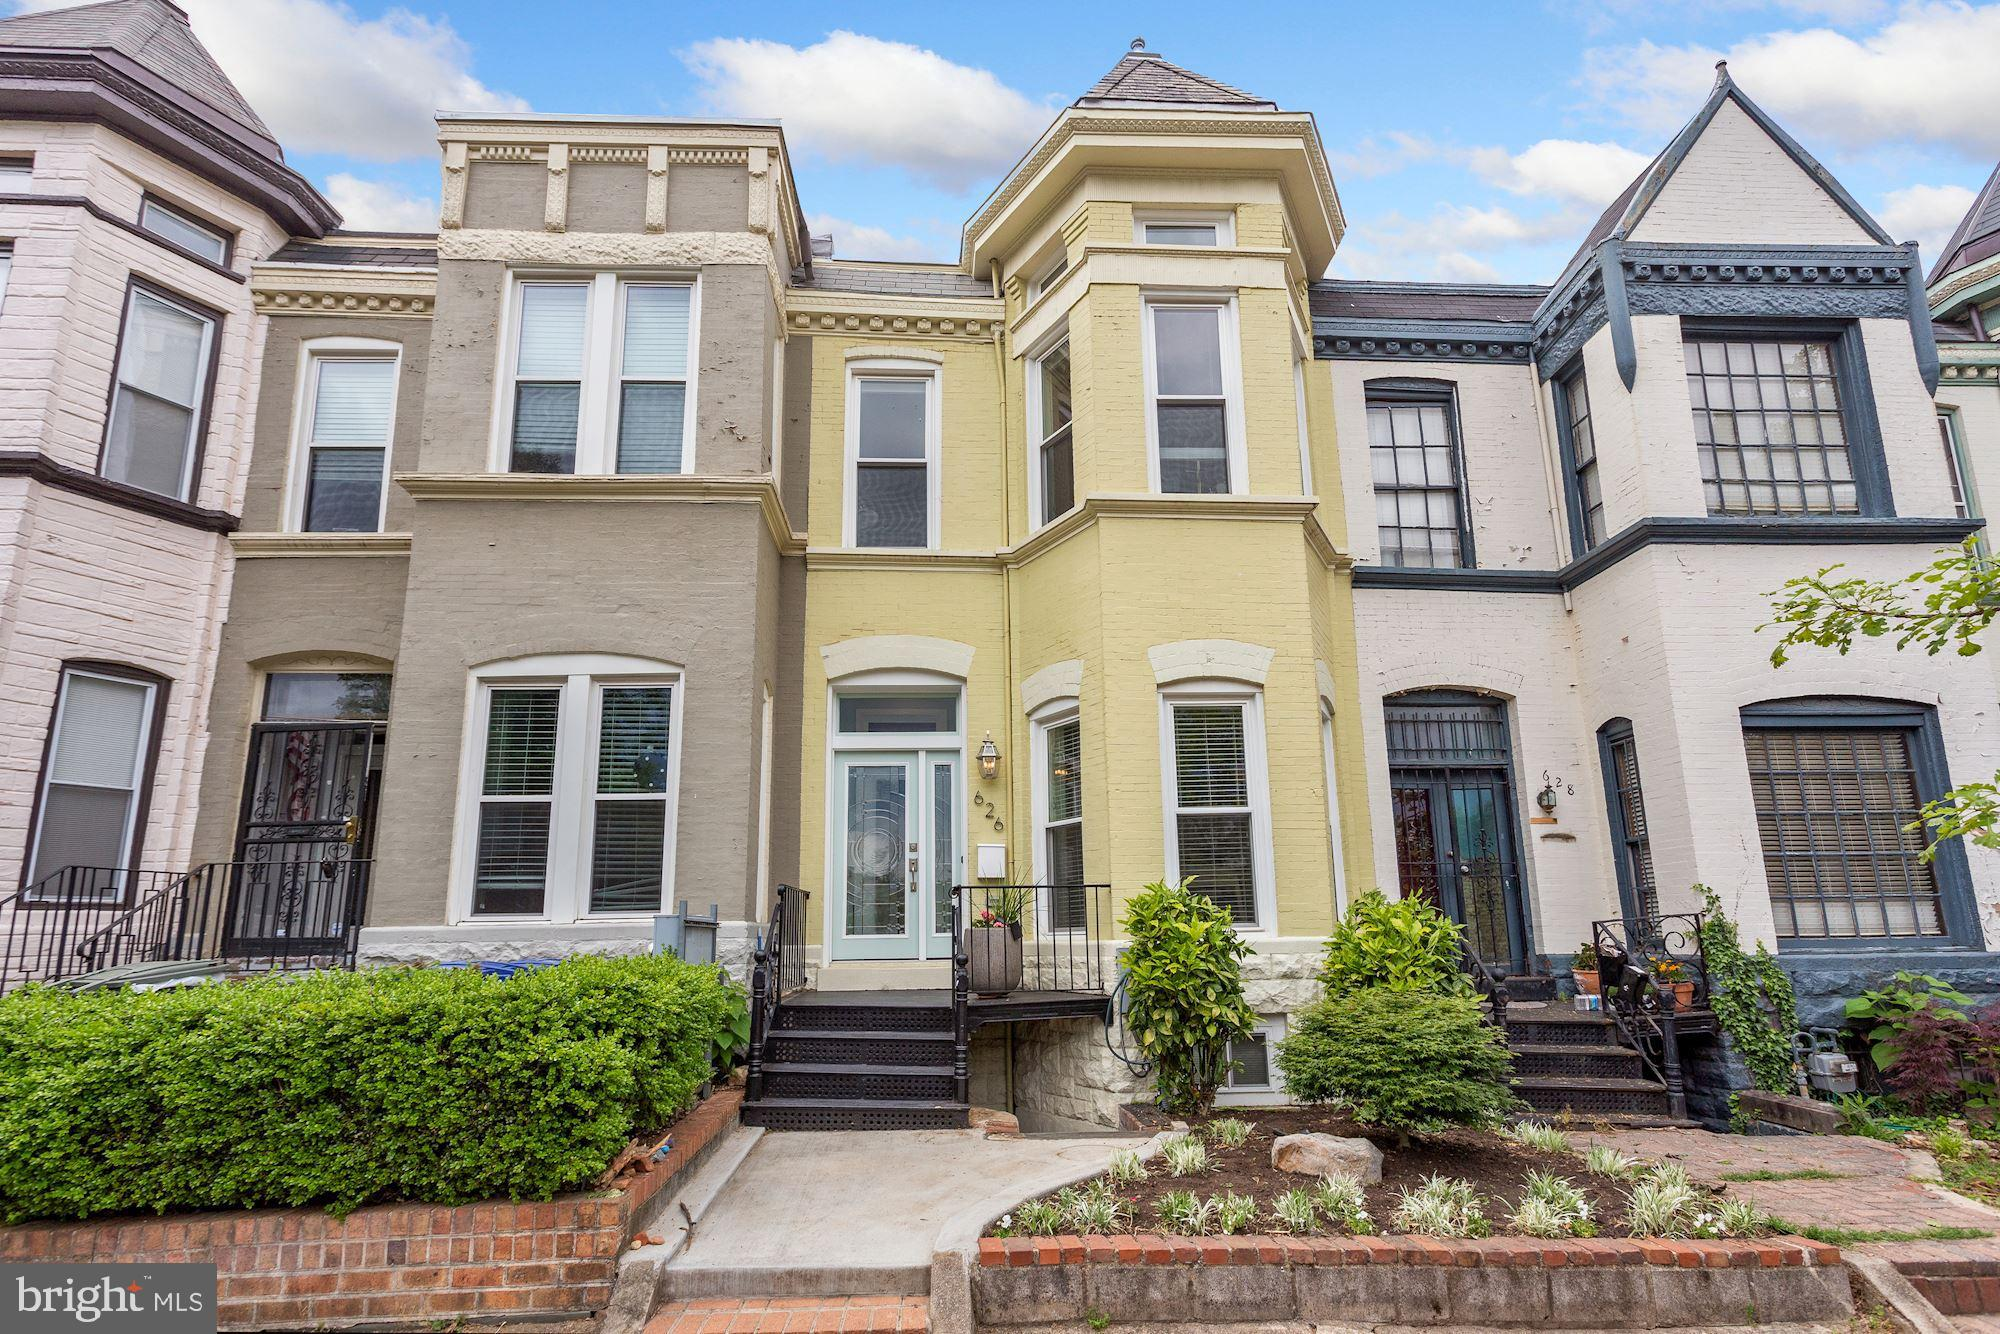 Welcome to 626 9th Street NE, a timeless Victorian townhouse on one of Capitol Hill's most charming